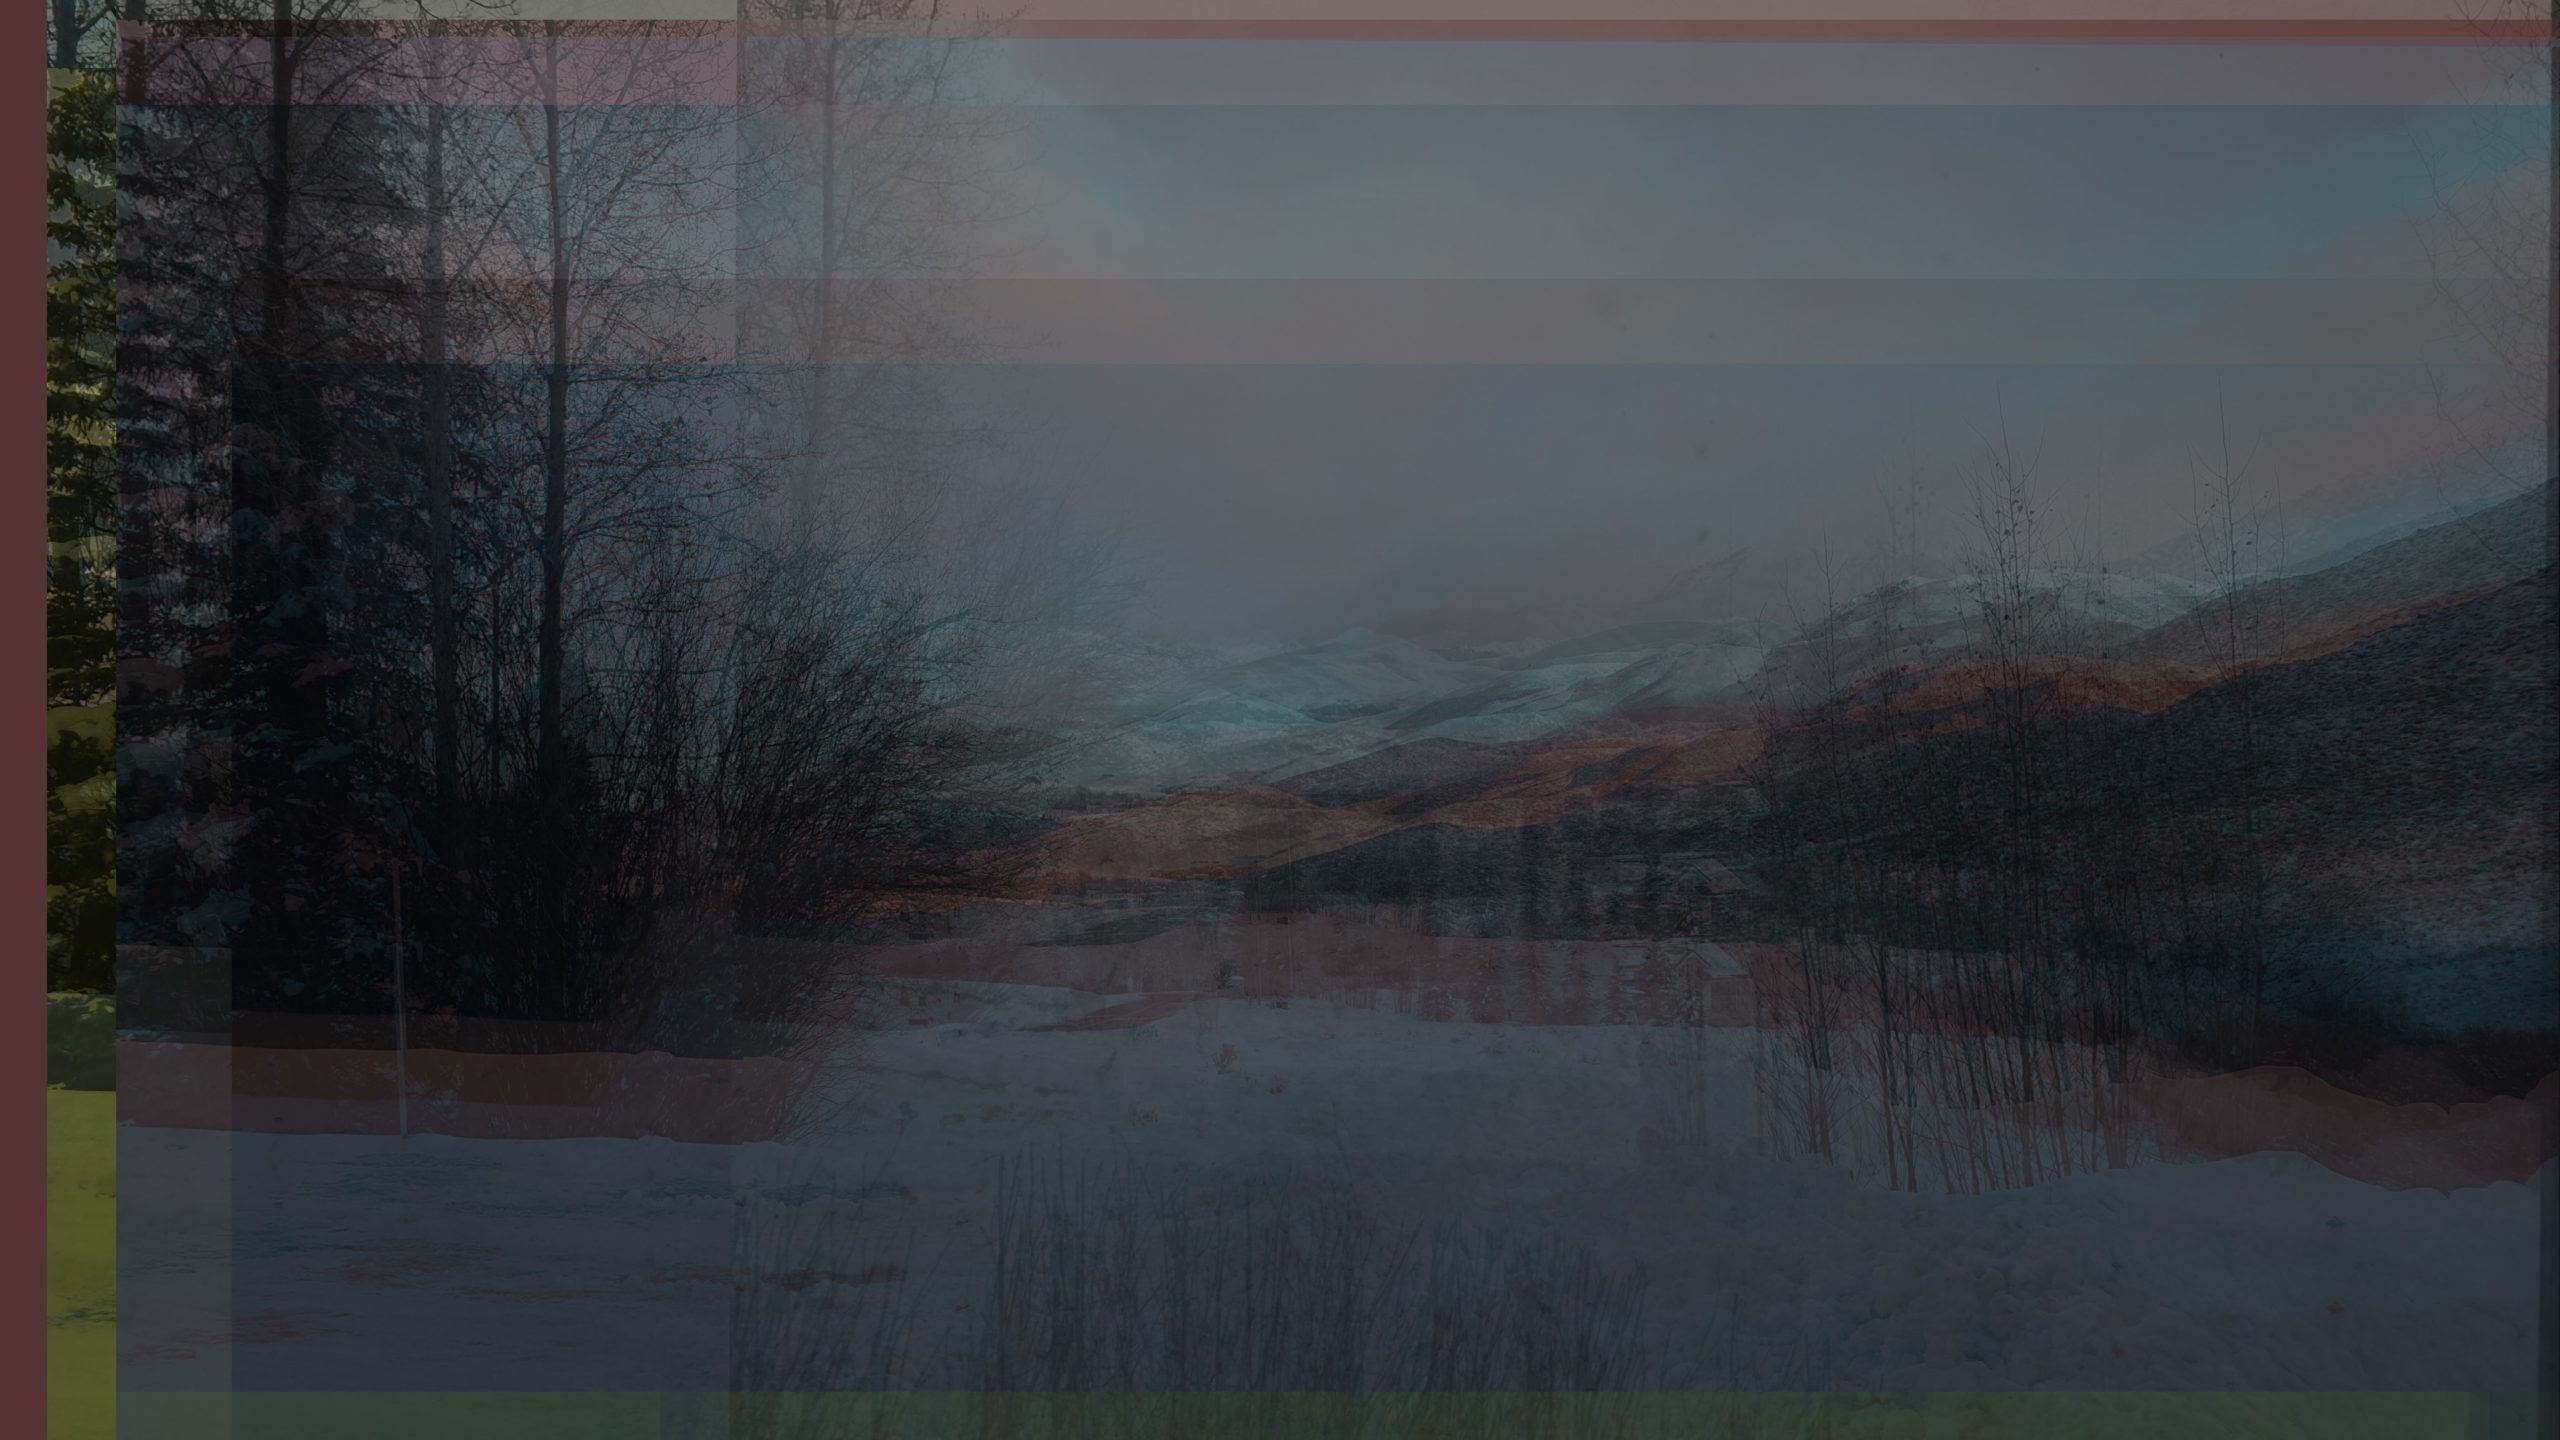 "The image shows a layered series of photographs taken from a similar perspective. It is the same view of photographs of the Shoshone/Idaho Mountains, taken over a period of multiple days with the available light being different every time. The general blue-ish hue is from a couple of digital photographs that were taken in the early morning. The photos are also layered onto a photoshop background that is orange-red, a hue taken from one of the other in processed digital photographs. A sliver of that color is seen on the left side of the photograph. It is an exposure of the background layer of a complex image. The images are not aligned perfectly, causing the overall lines in the image to appear blurred or unsure. The layering refers to the ""rolodex"" of light states in the writer's memory of the place (mentioned in the writing). The title points to landscape photography's role in Manifest Destiny (such as the photographs of Carlton Watkins)."